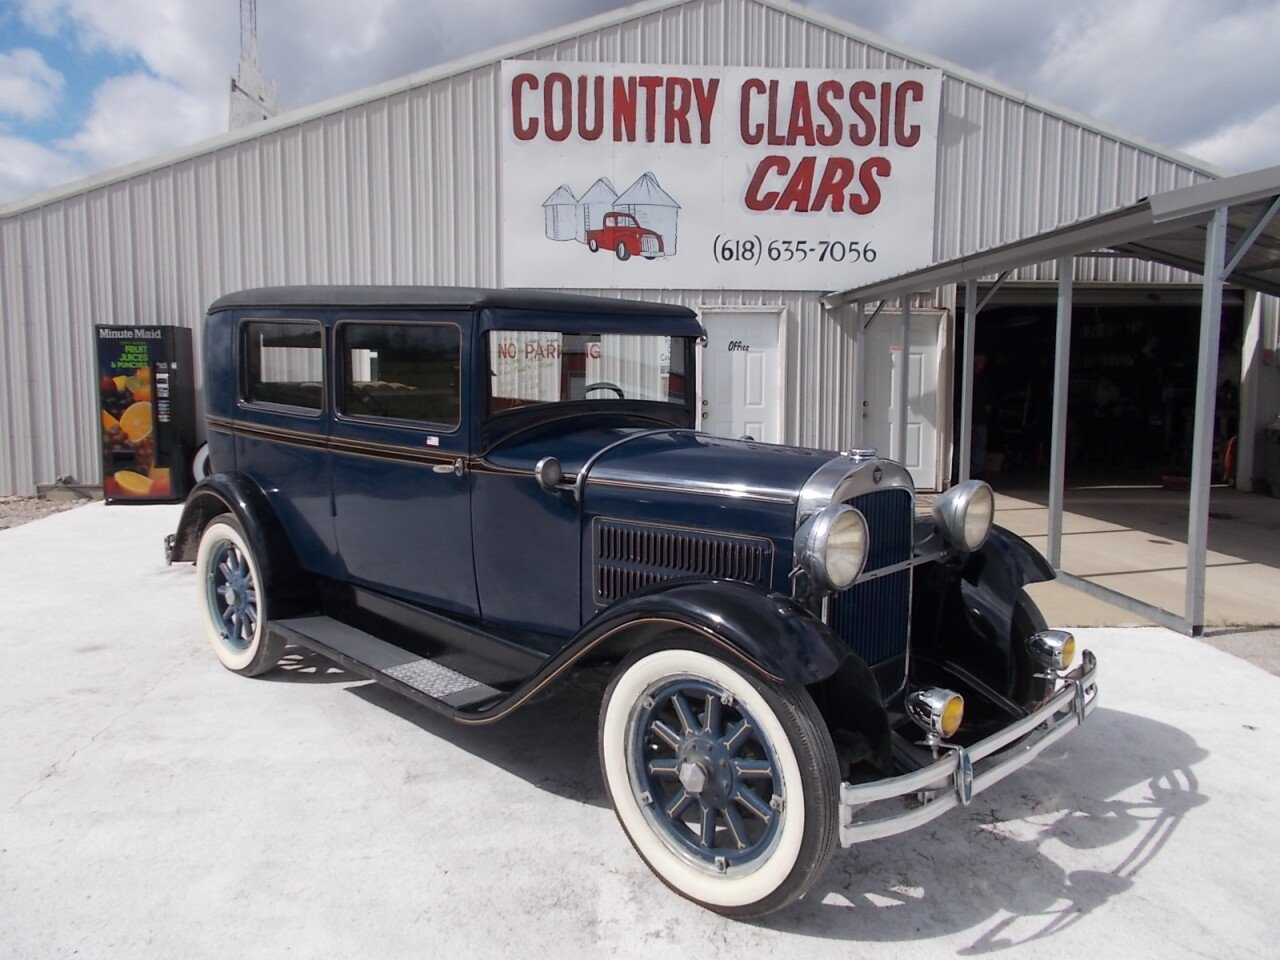 Classic Cars For Sale Auto Trader Com: 1929 Essex Other Essex Models For Sale Near Staunton